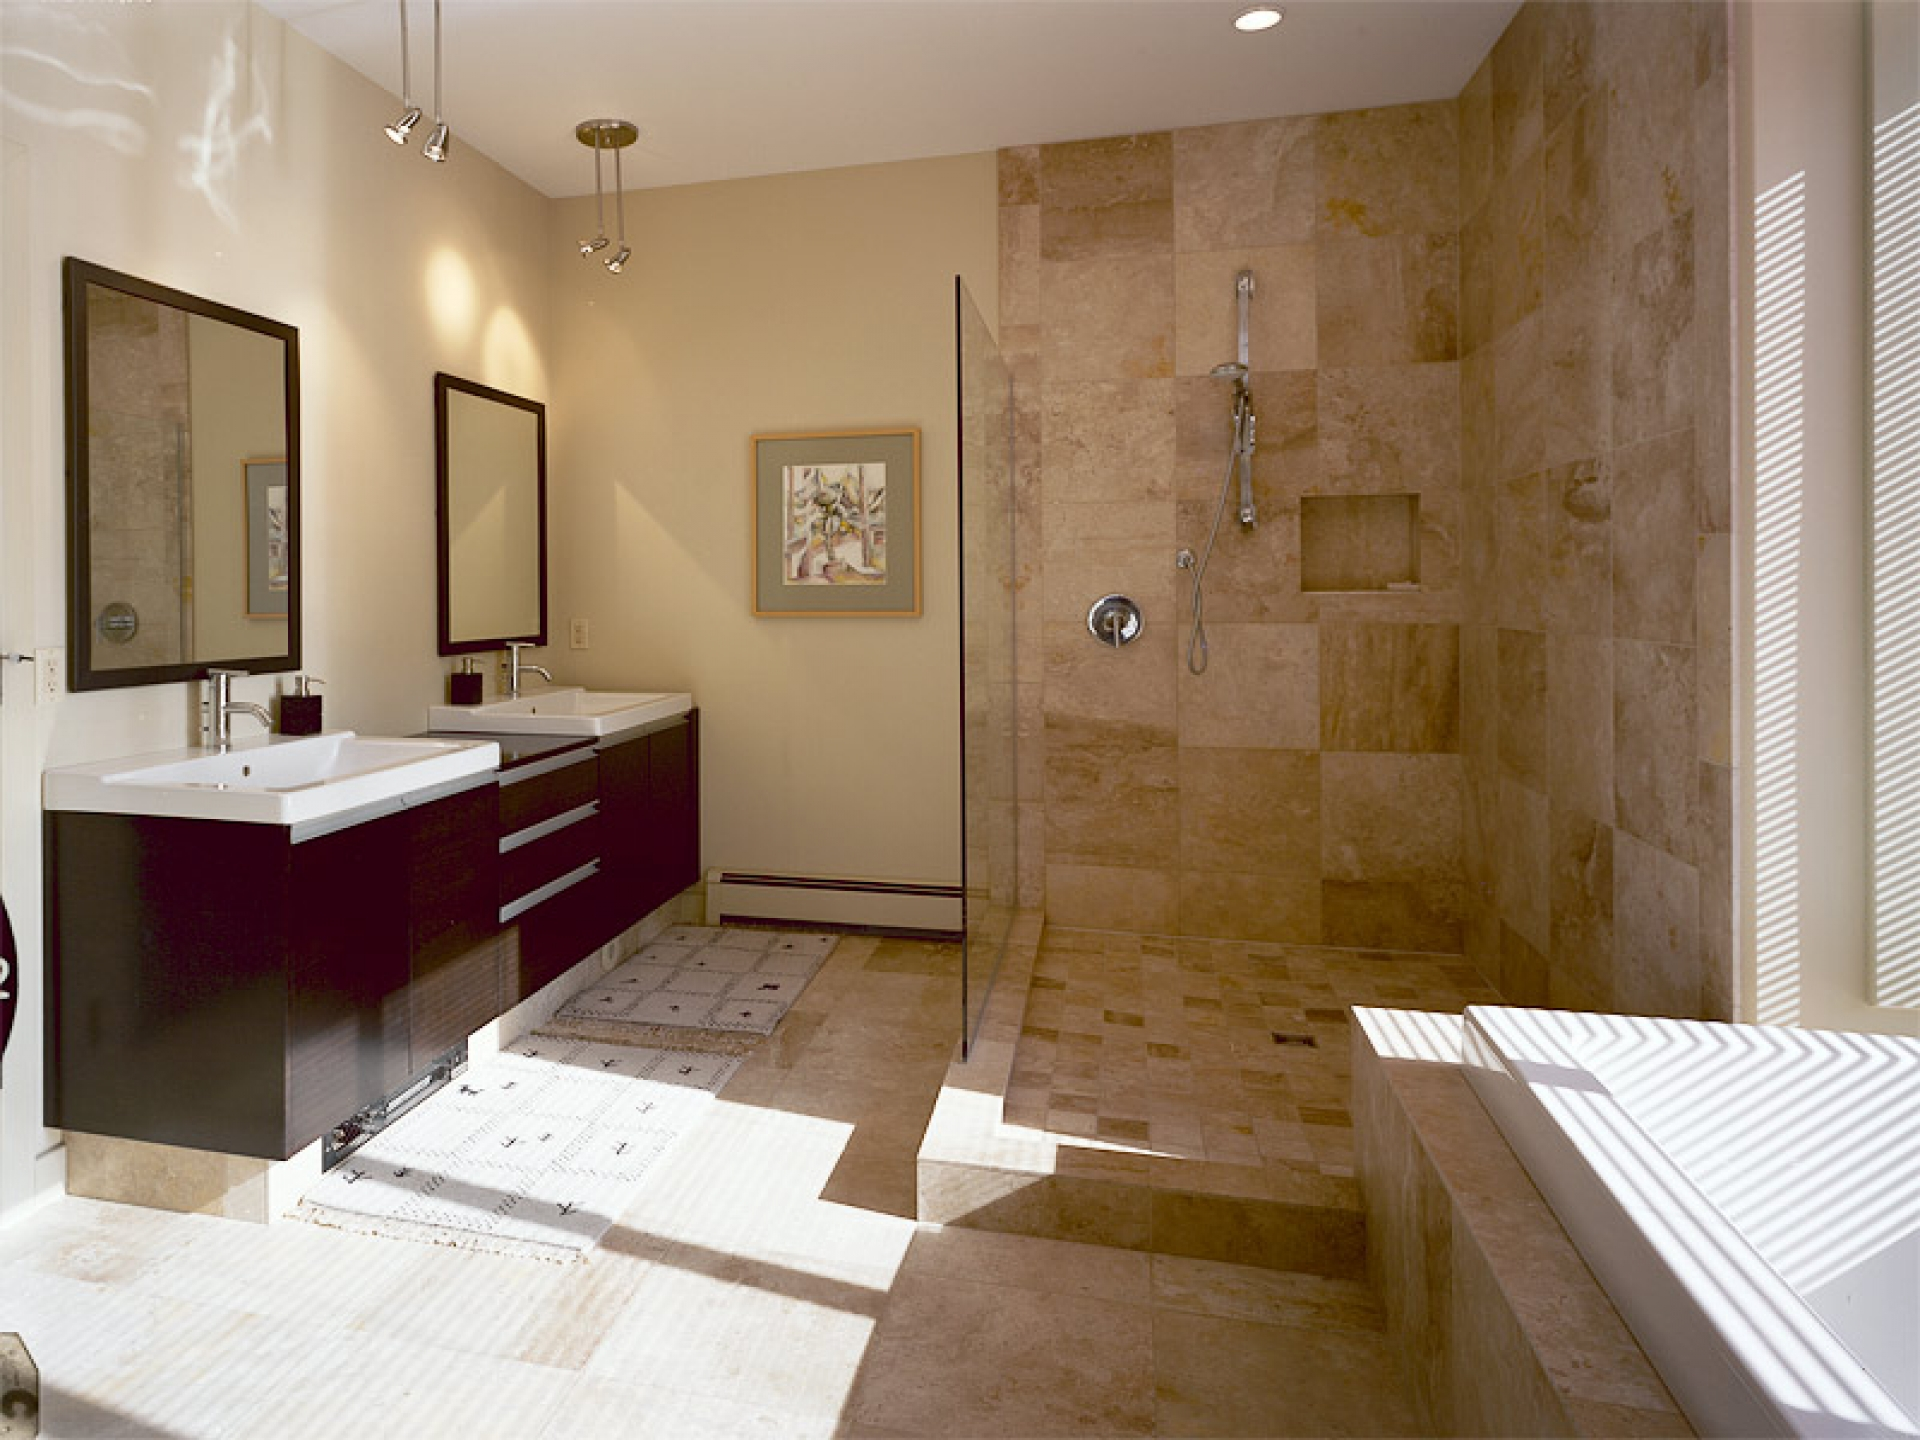 1920x1440 Small Ensuite Bathroom Idea 31879f7d9f8238243c17be5c81b8cc0f  A919e6404a5bc9da34e4700d2ee1a146 Bathroom_and_toilet_design_17 ... Part 13